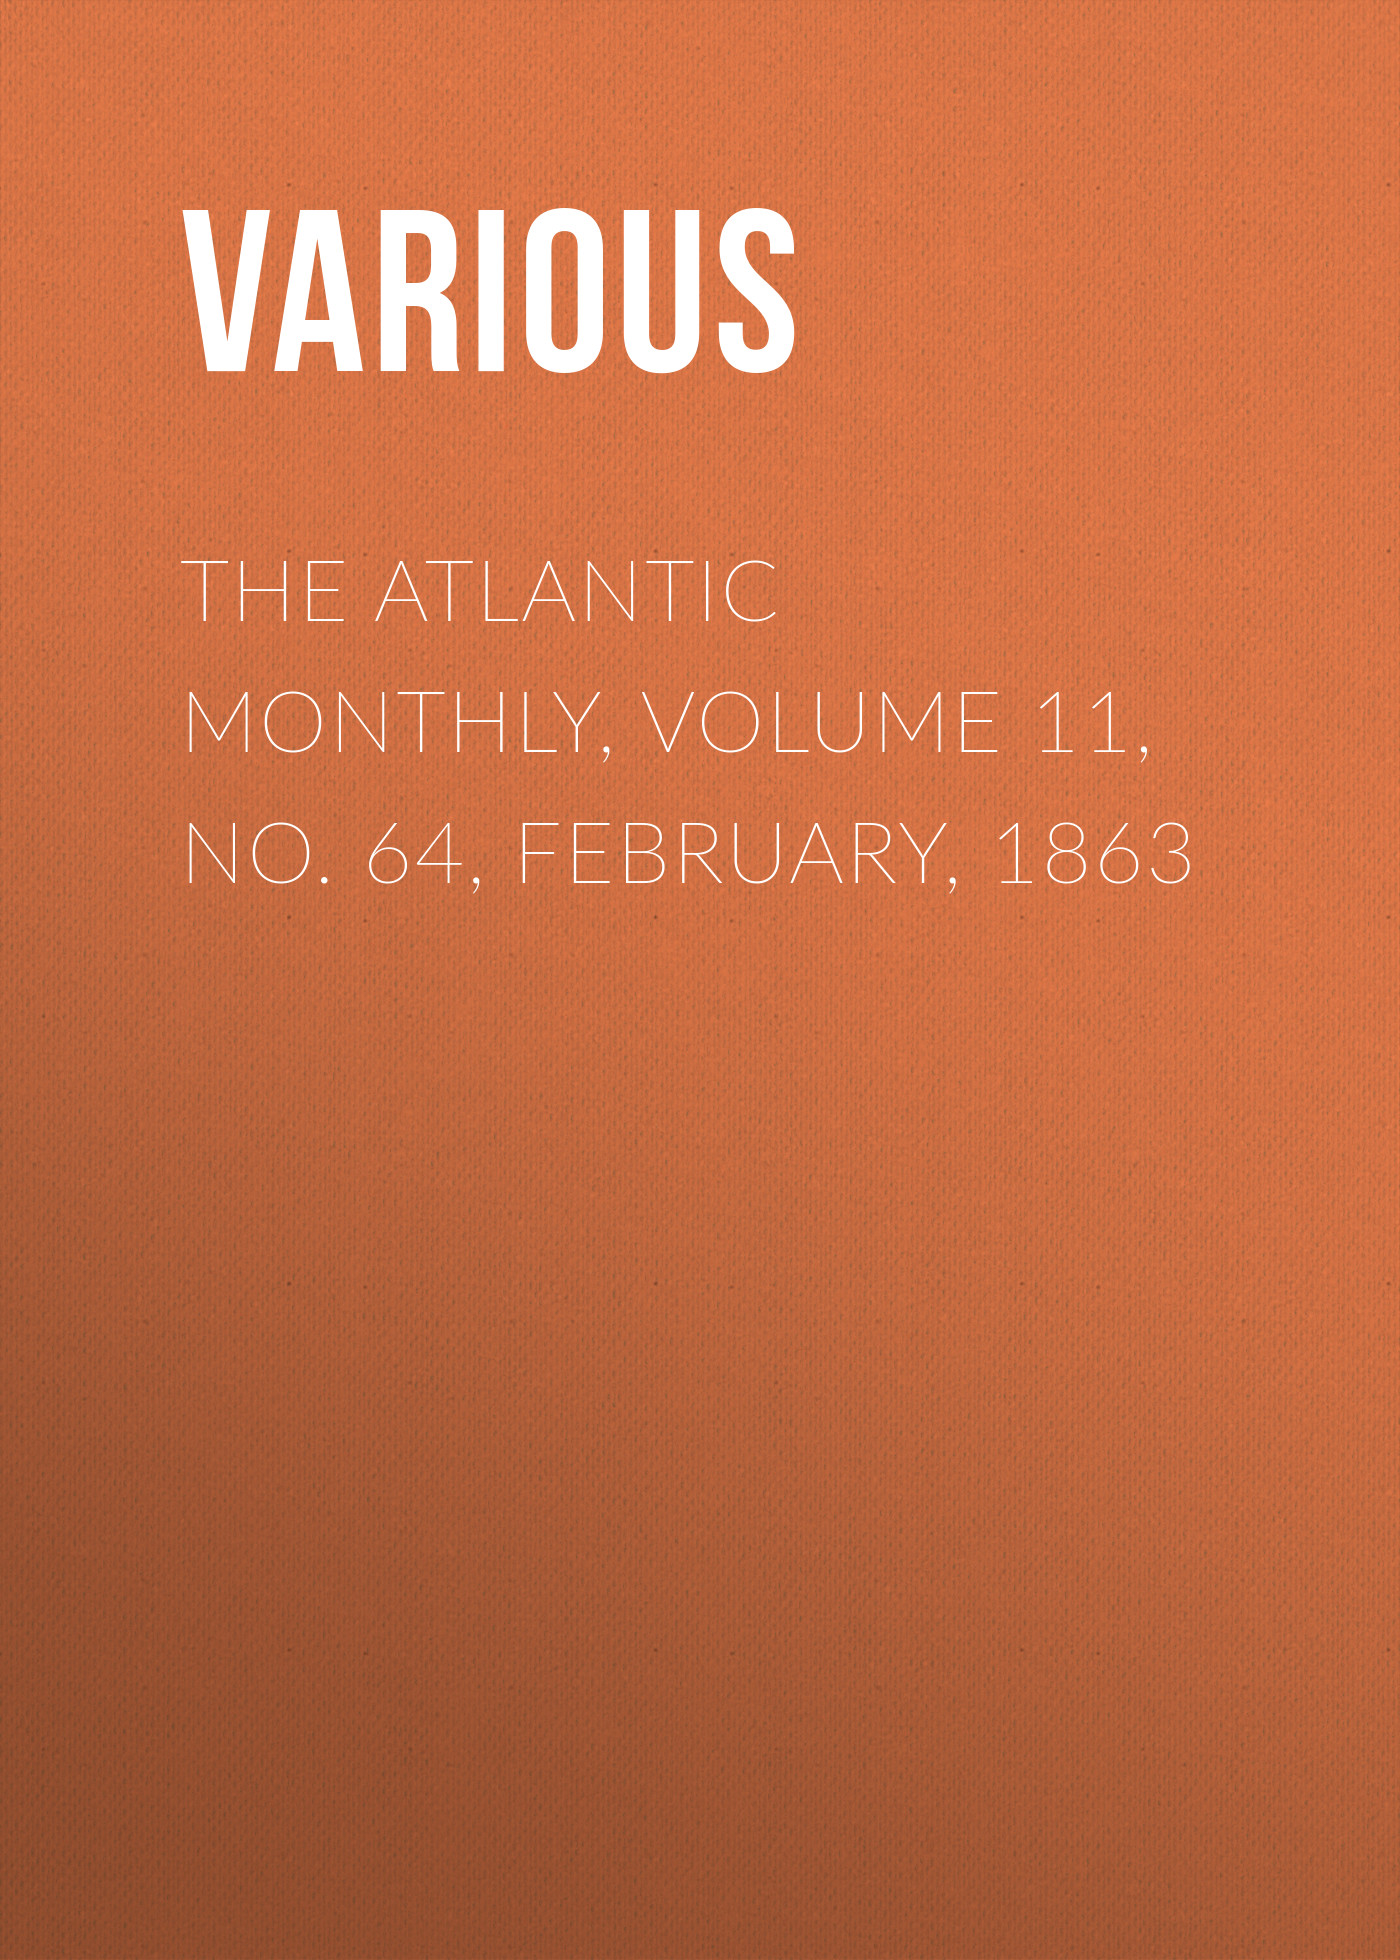 Various The Atlantic Monthly, Volume 11, No. 64, February, 1863 цена